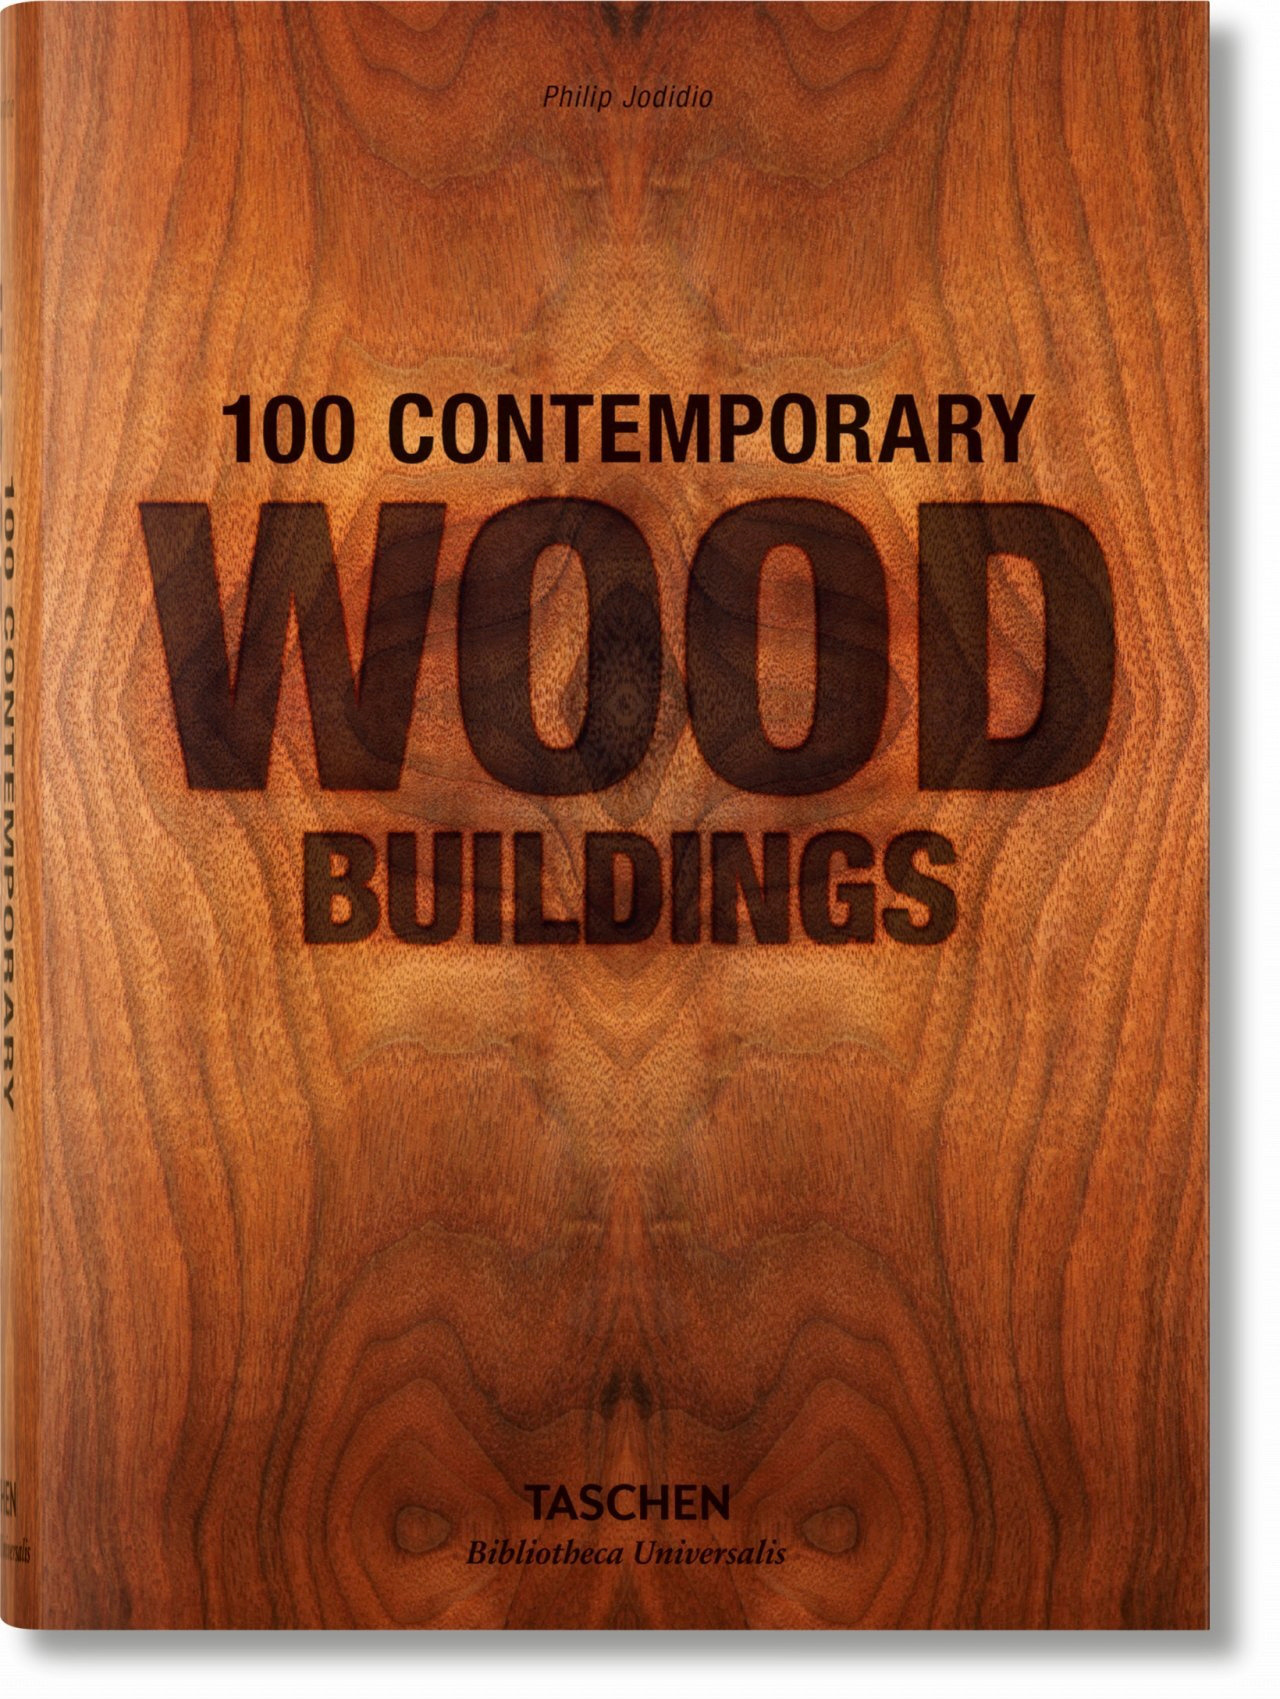 BU 100 CONTEMPORARY WOOD BUILDINGS